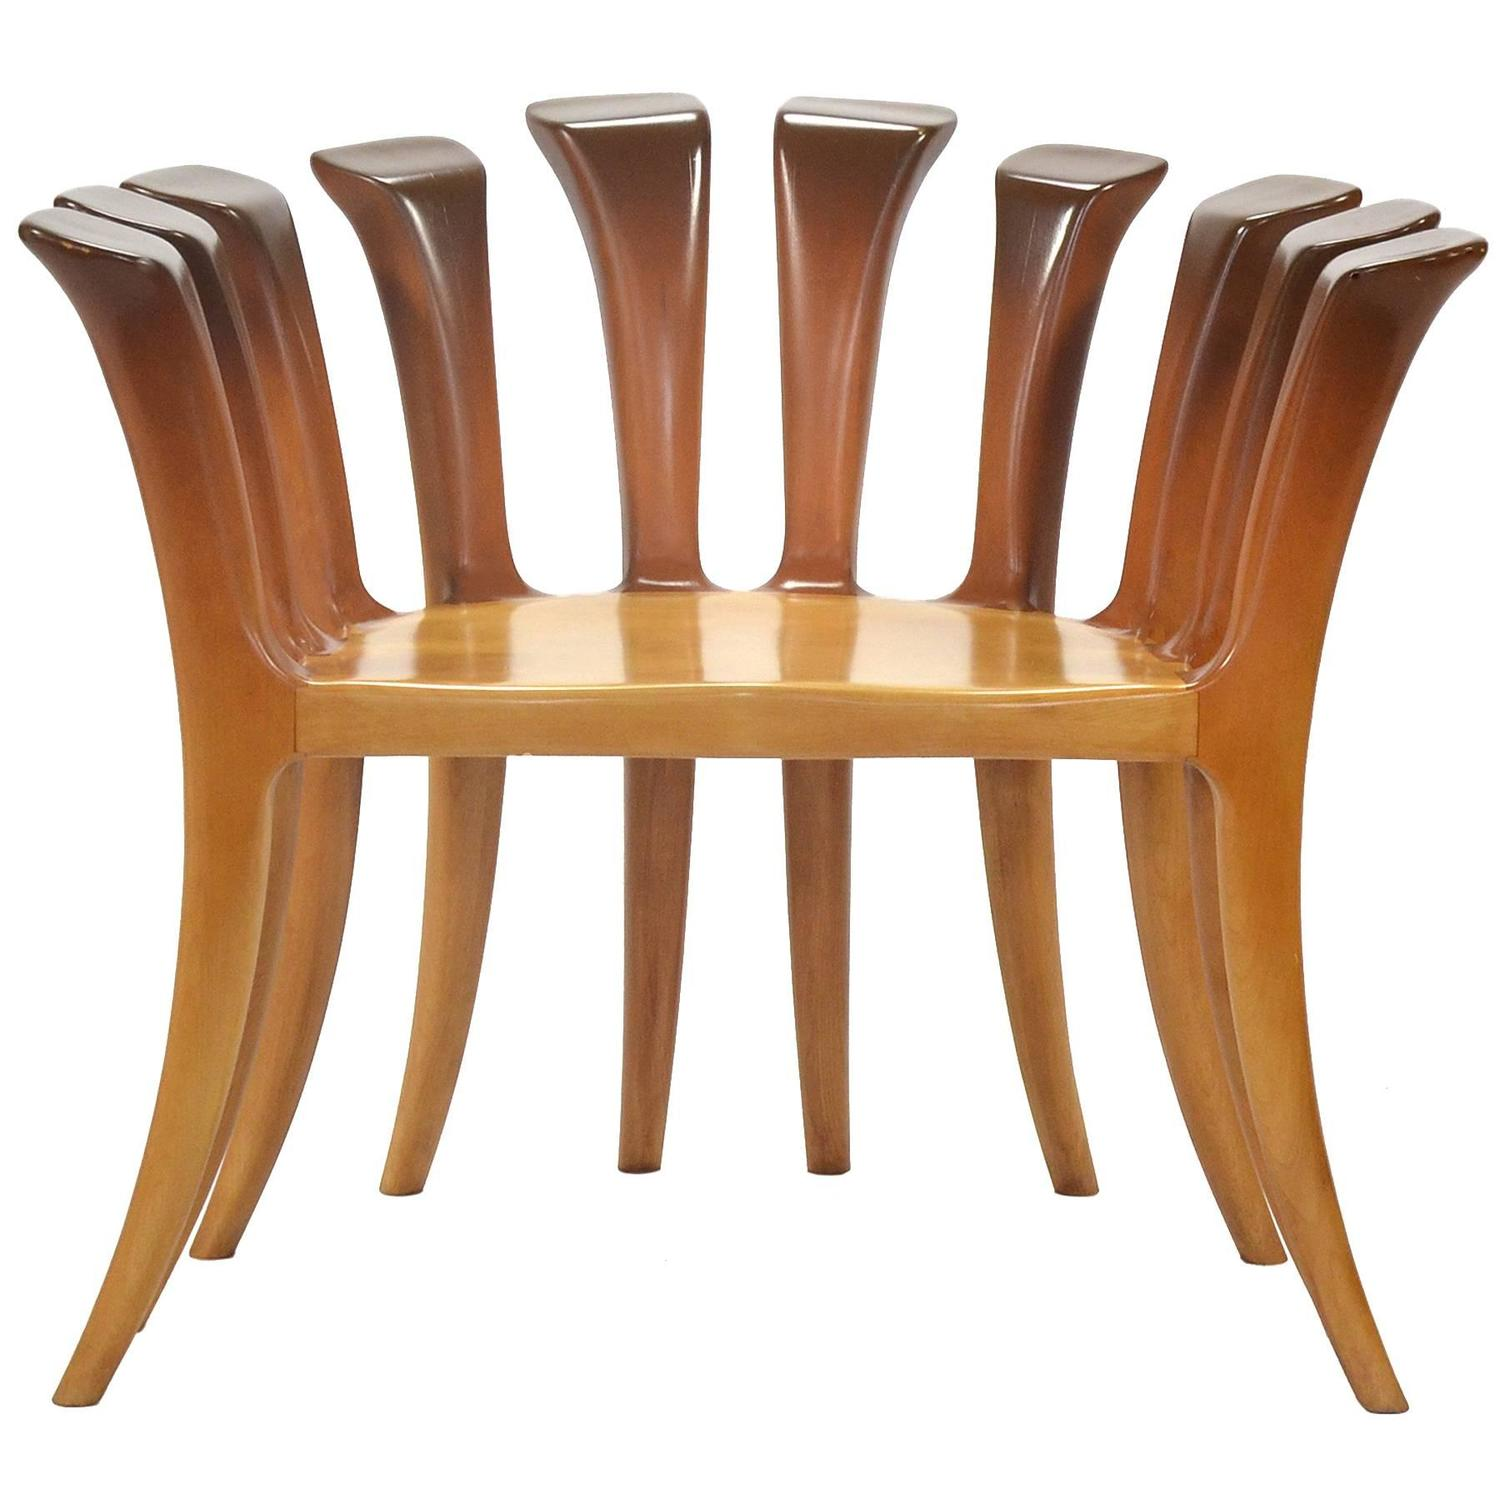 Studio Craft Chair For Sale At 1stdibs